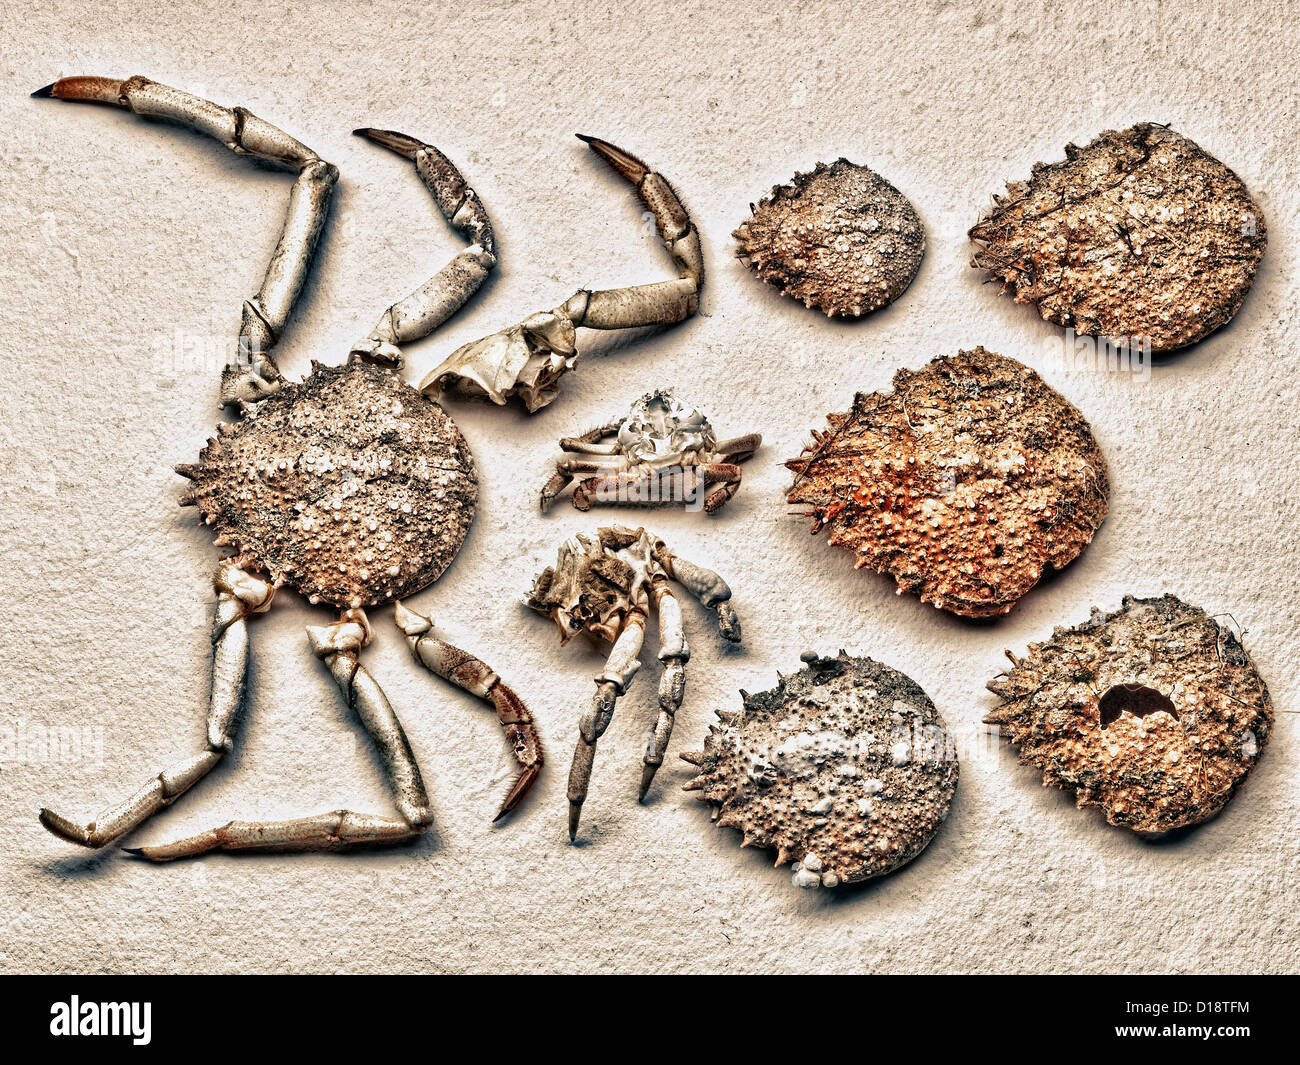 Pieces of crab shell - Stock Image